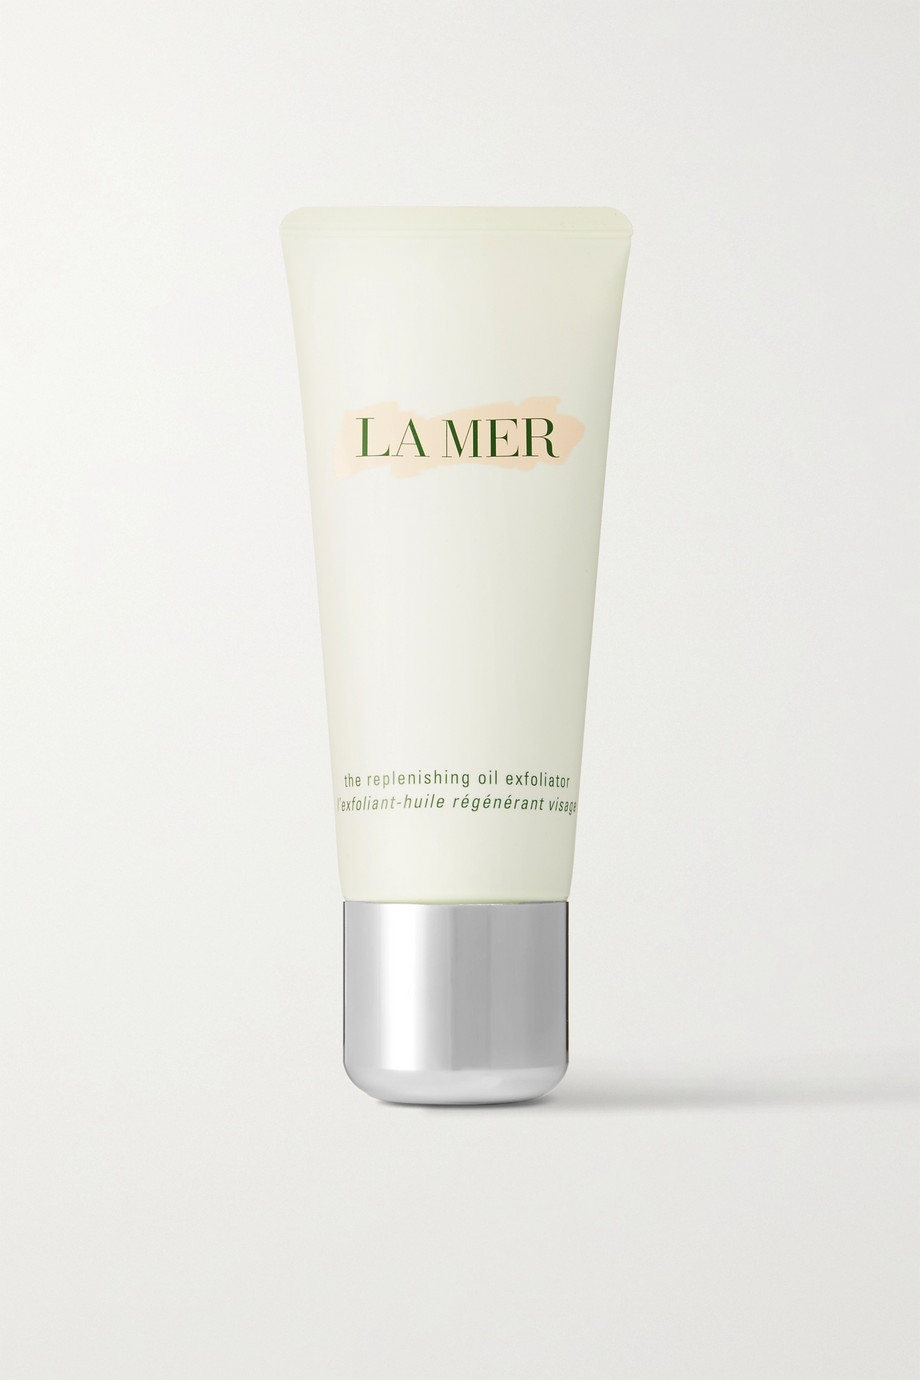 La Mer The Replenishing Oil Exfoliator, 100 ml – Peeling